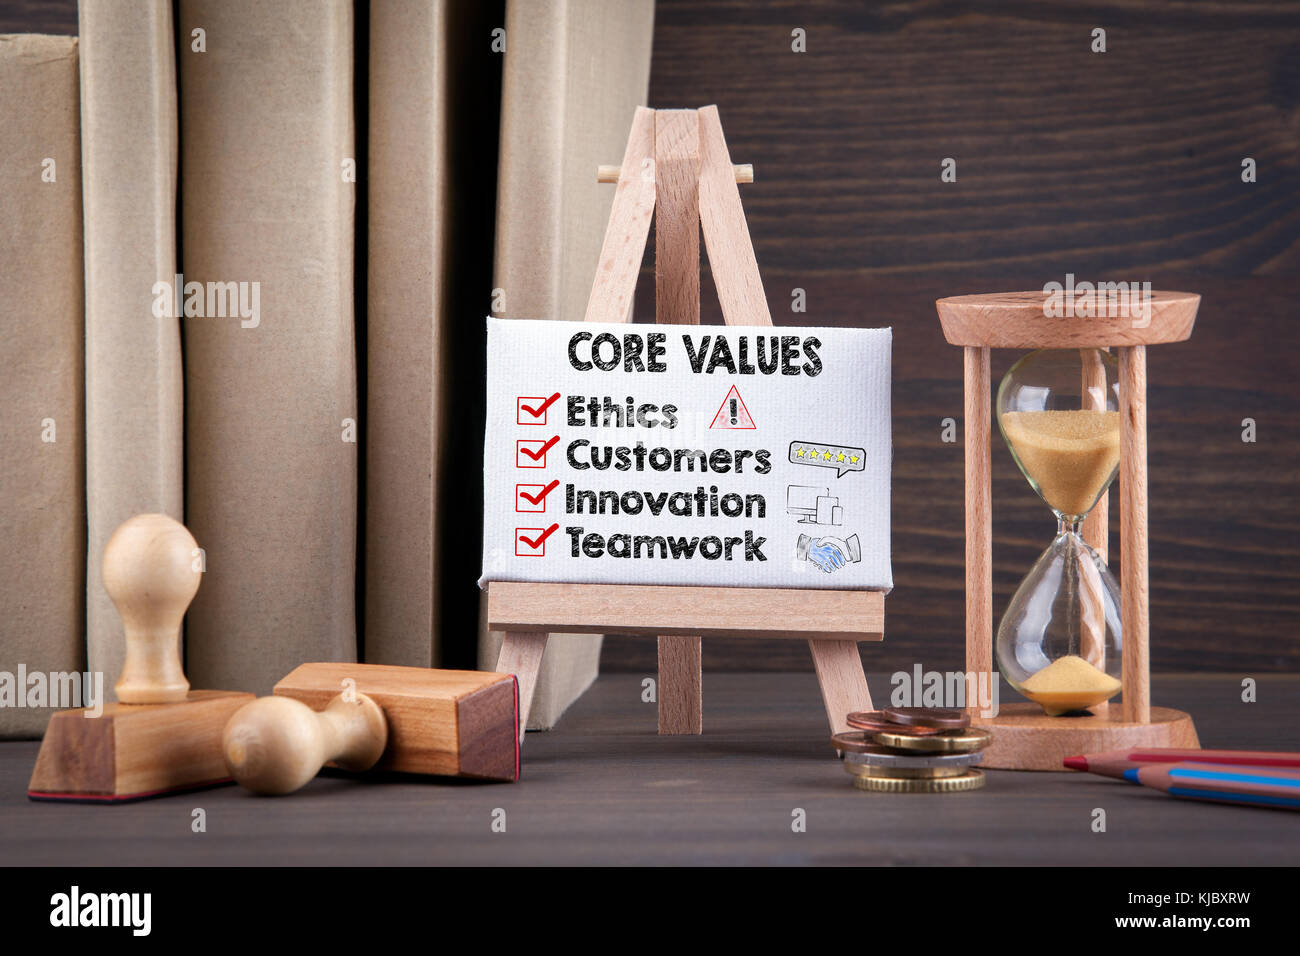 Core Values concept with icons. Sandglass, hourglass or egg timer on wooden table  - Stock Image